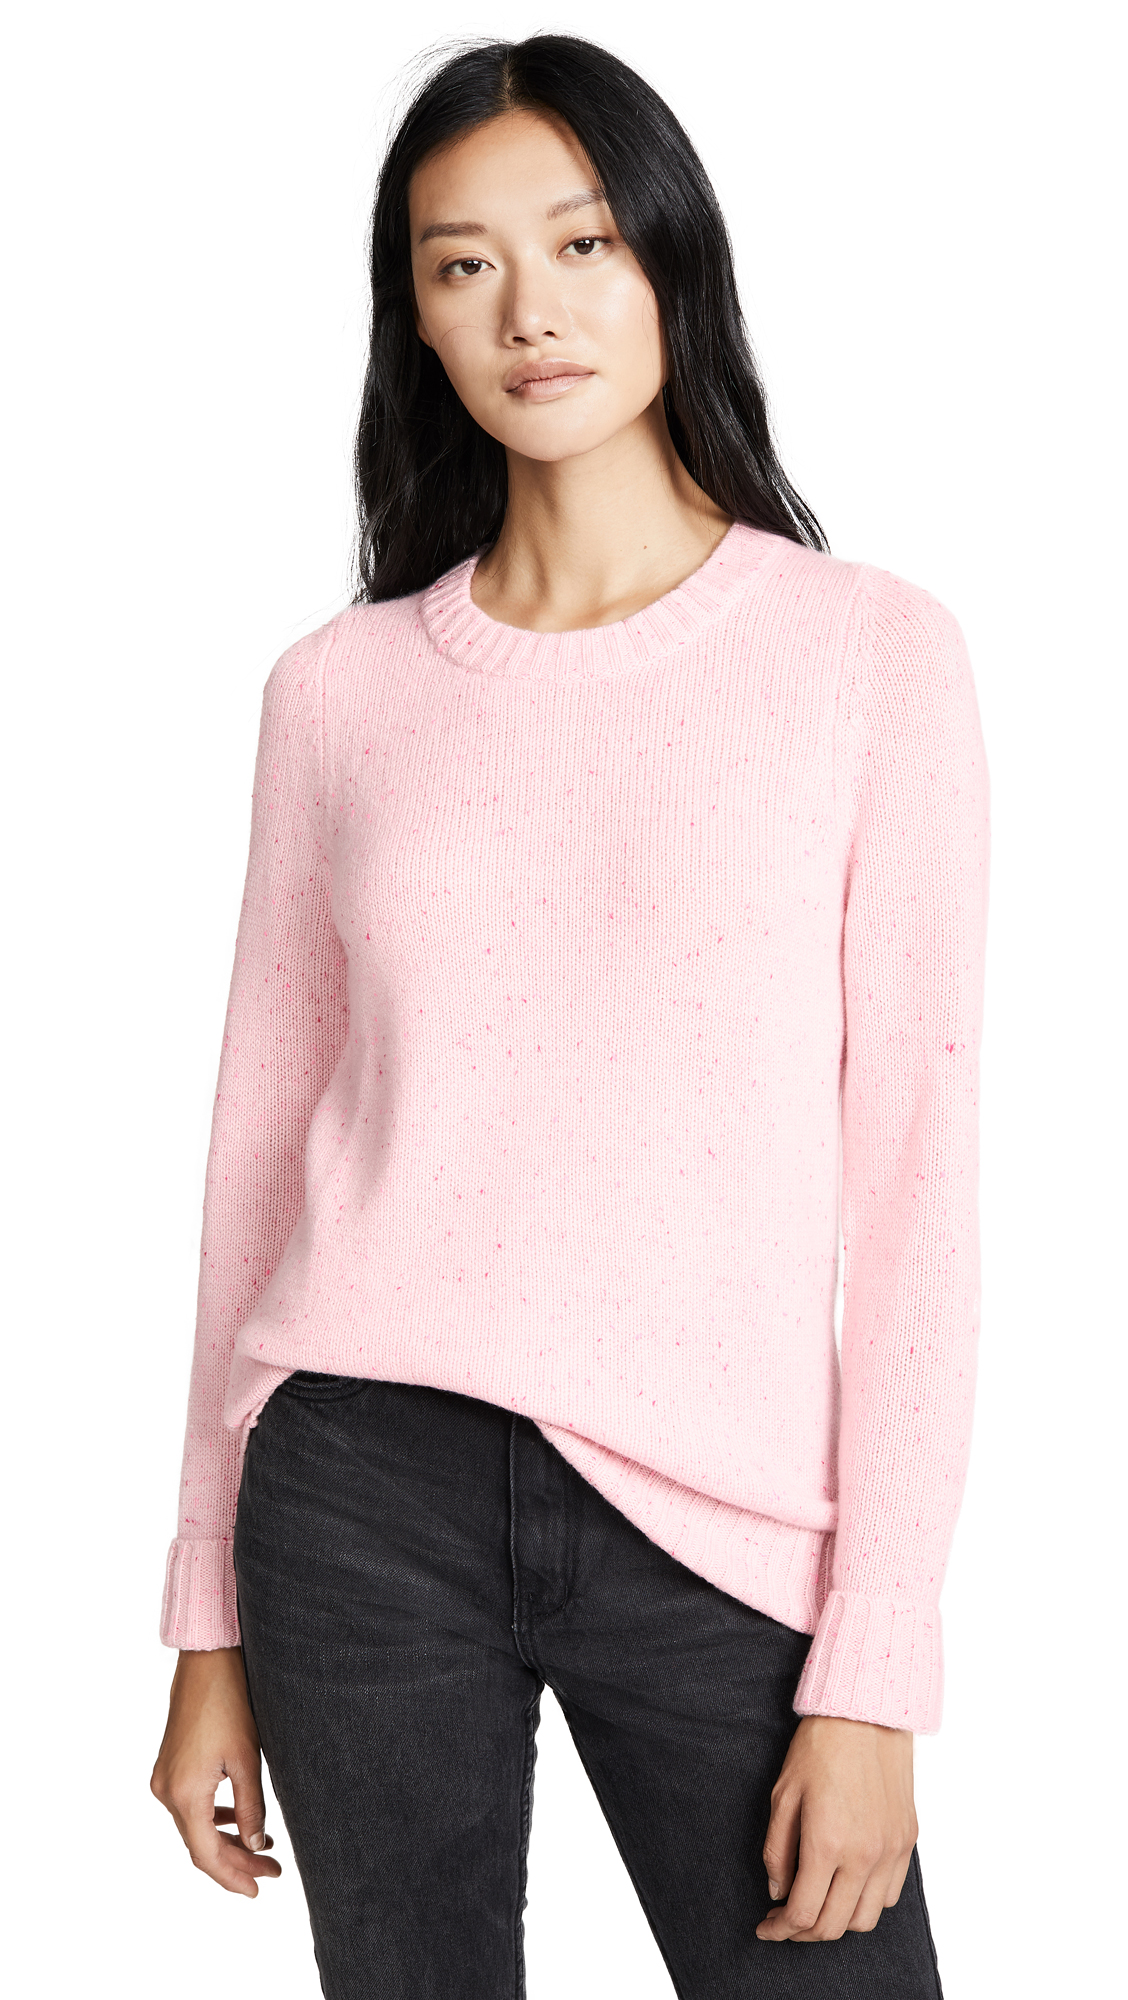 FREECITY Grandmothers Cashmere Sweater in Pinkgum